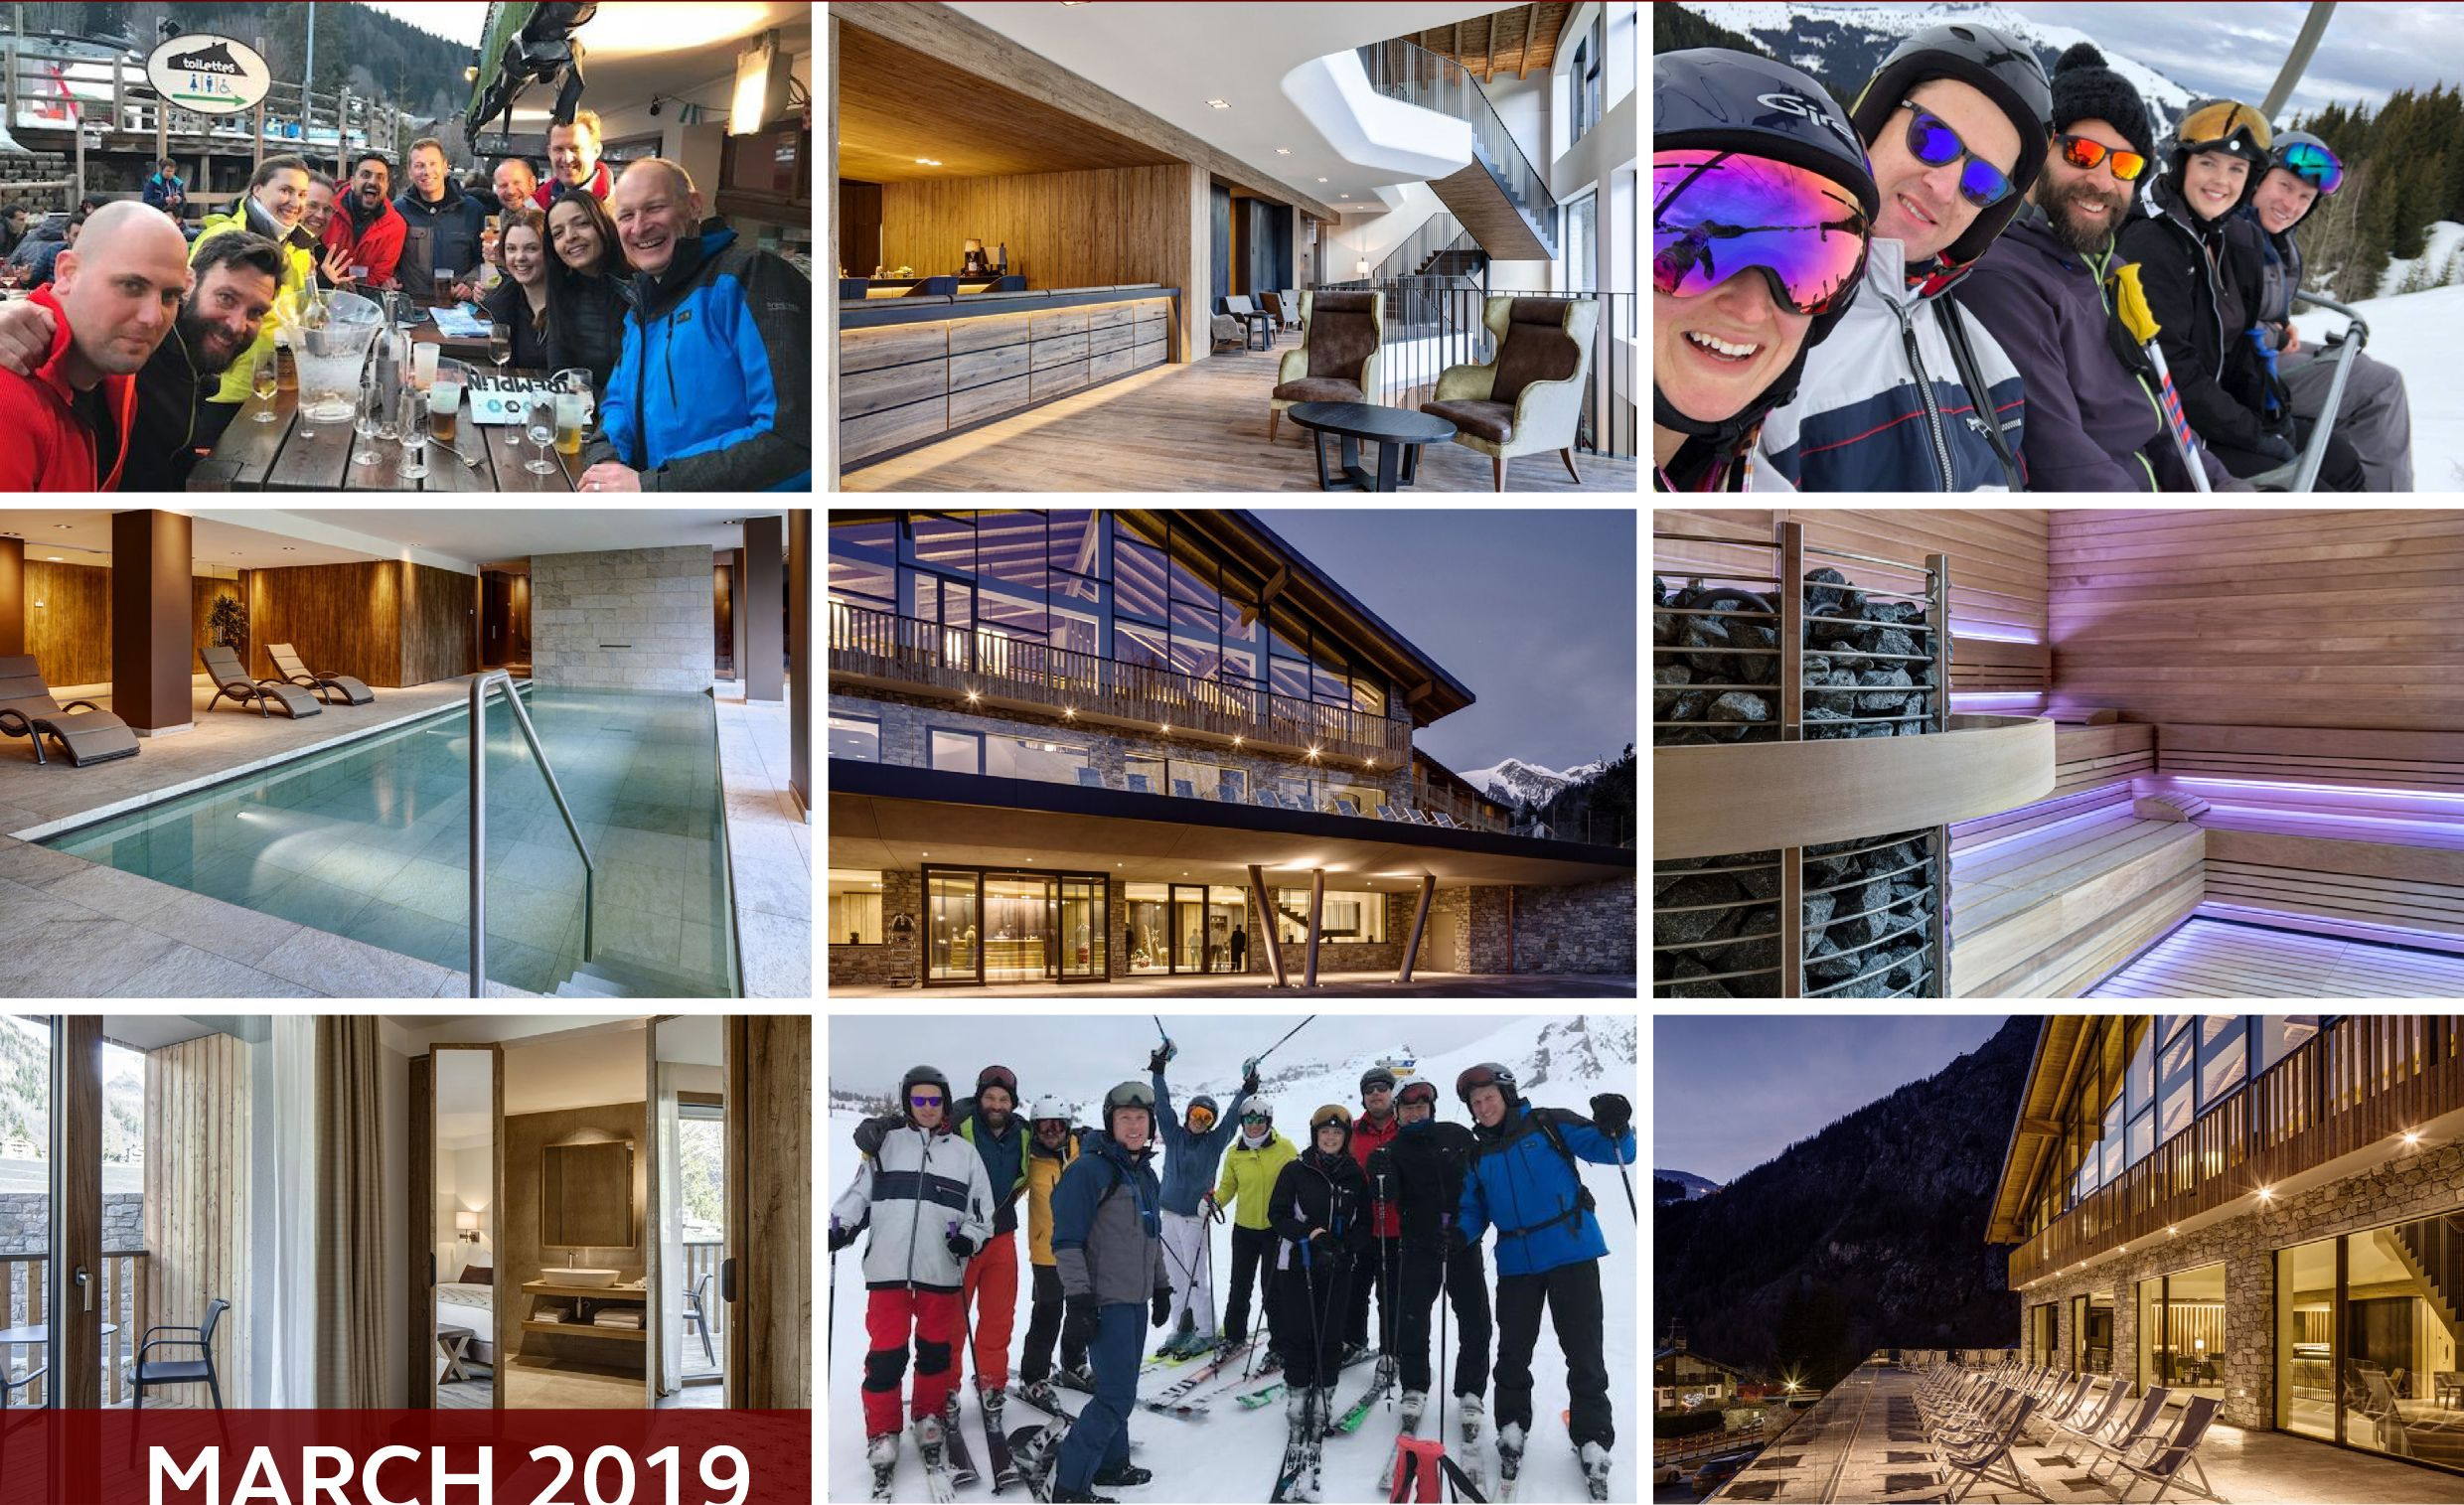 Image of Ski trip in Courmayeur 2019 event